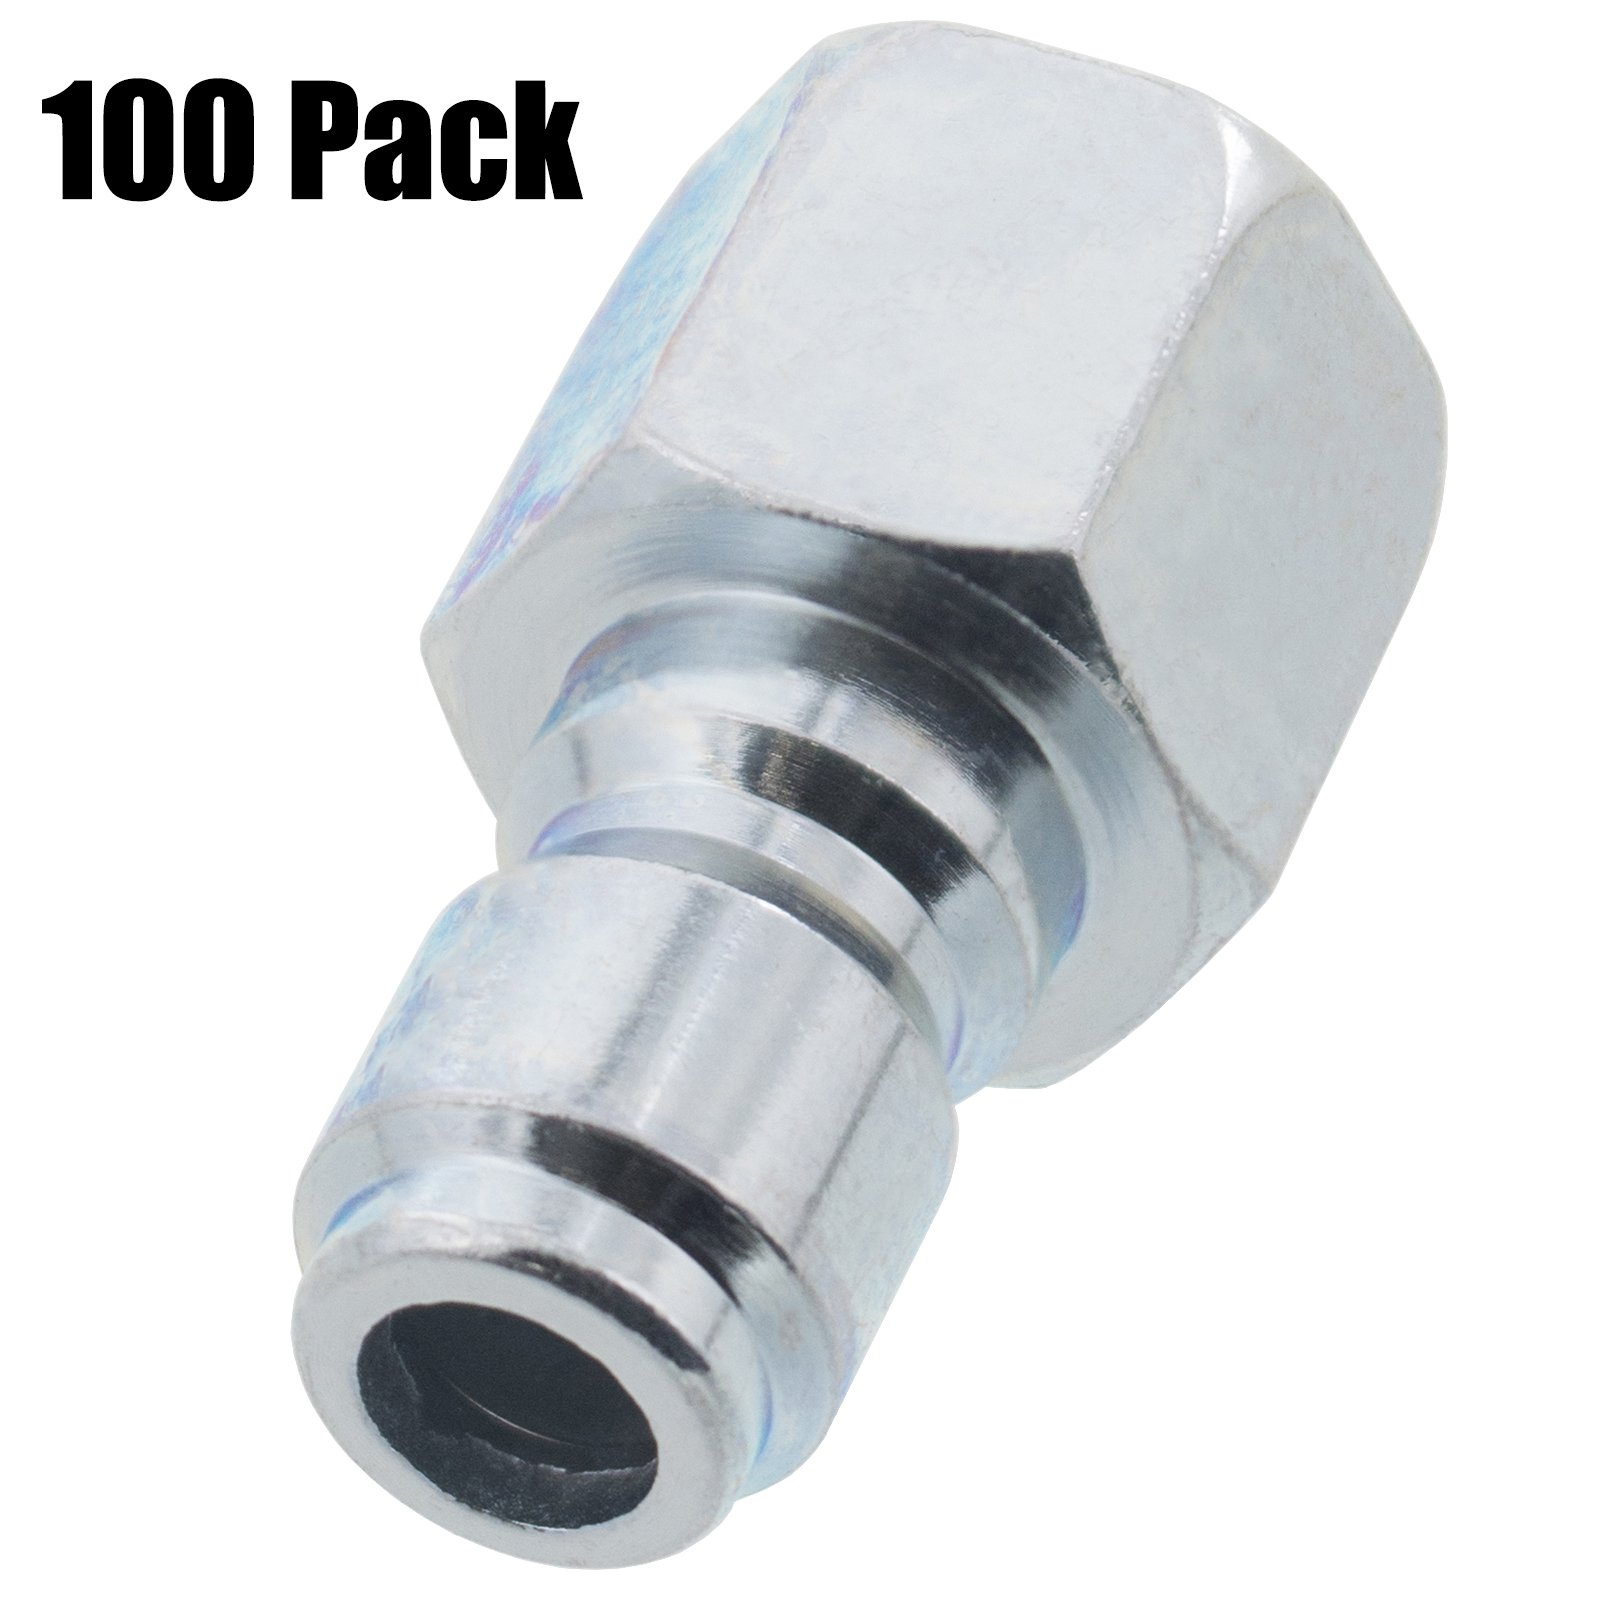 Erie Tools 100 Pressure Washer 3/8in. Female NPT to Quick Connect Plug Zinc Plated Coupler High Temp 4000 PSI 10.5 GPM by Erie Tools